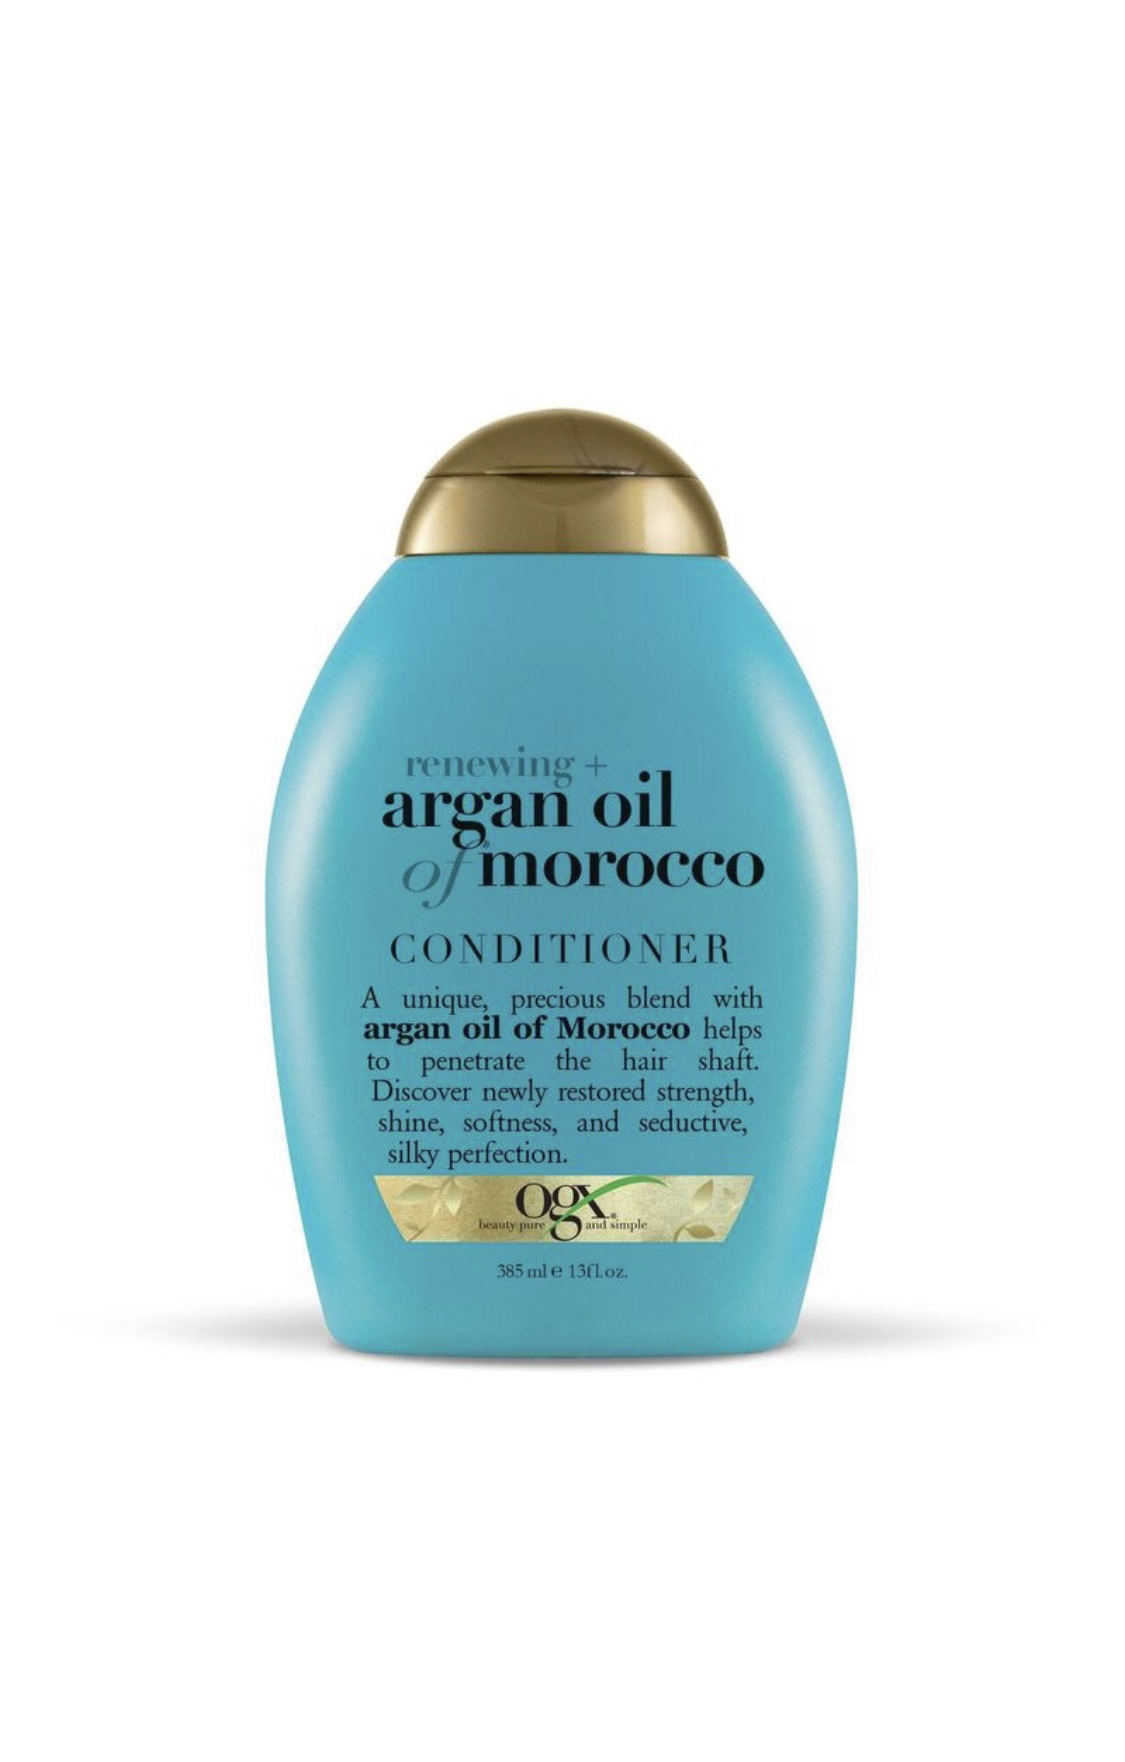 OGX Renewing + Argan Oil of Morocco Conditioner Review-Amazing results-By dimps7